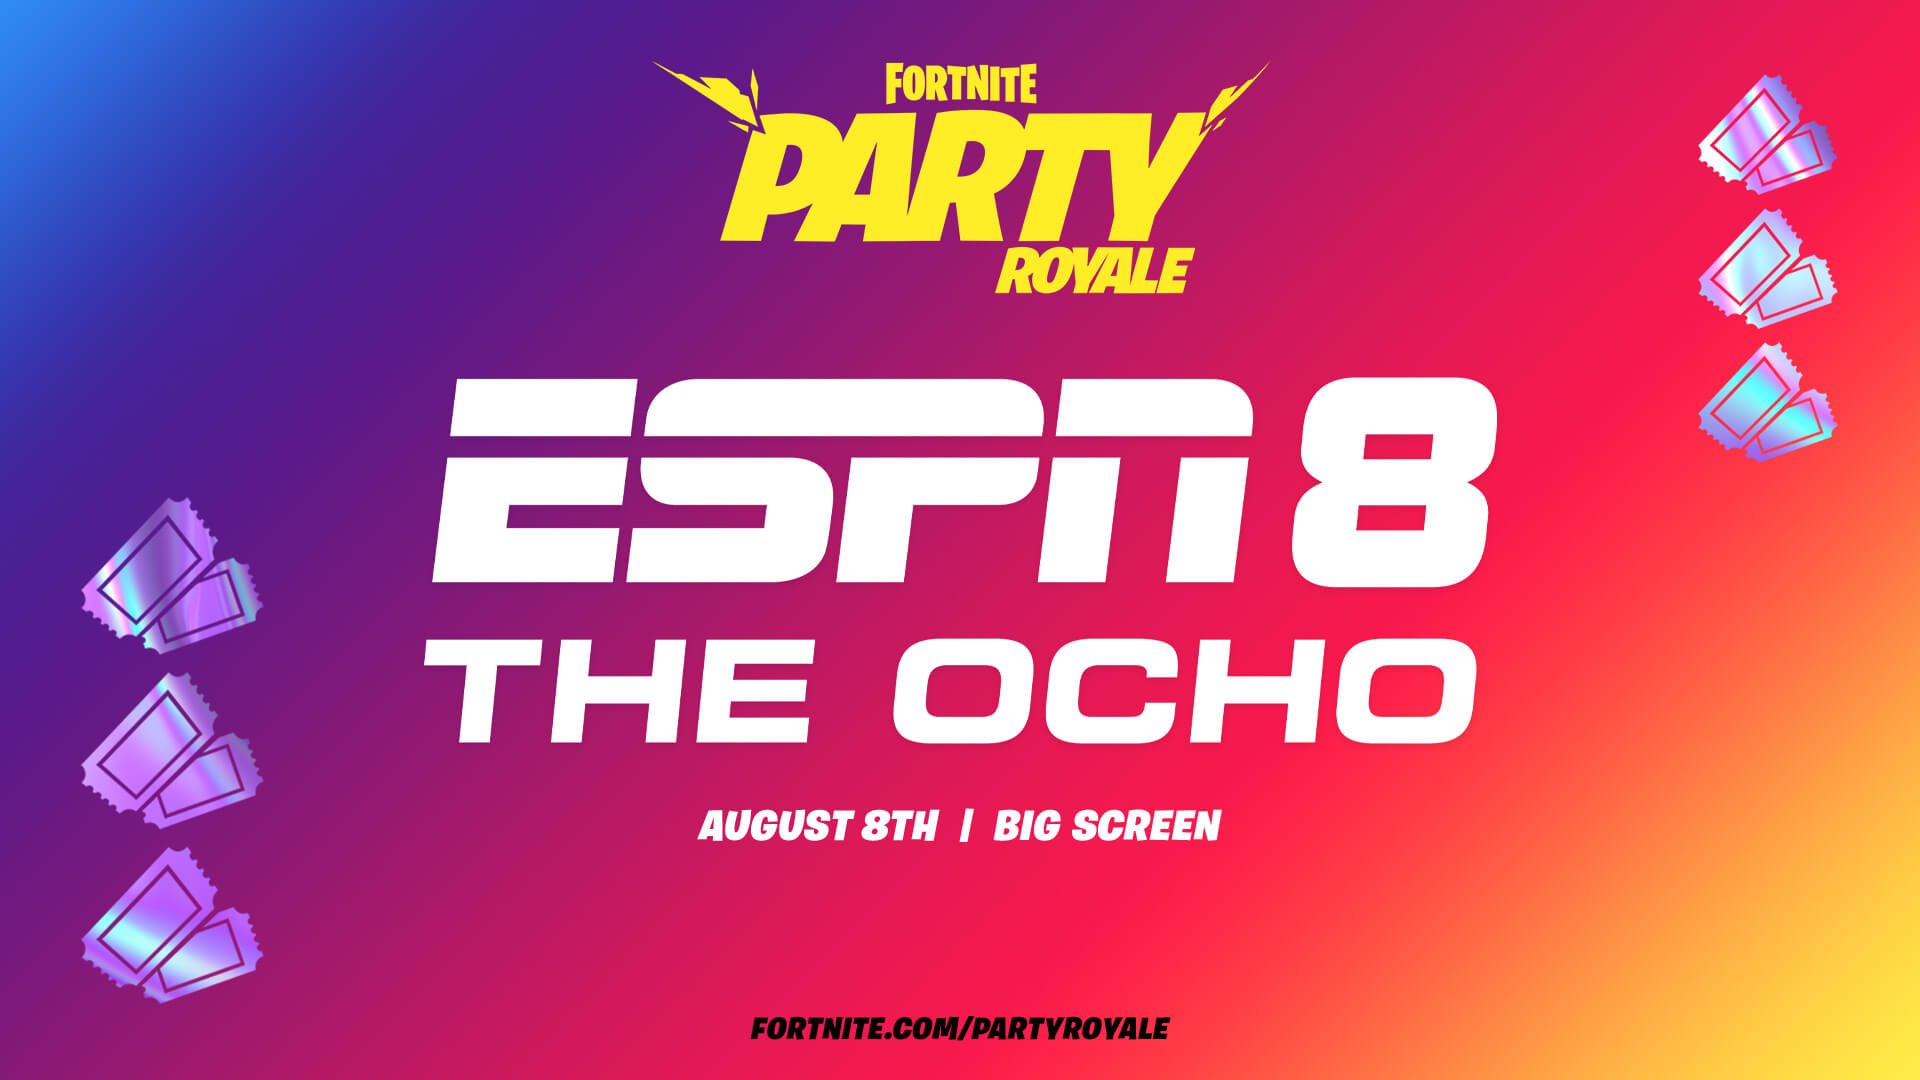 Fortnite Party Royale And ESPN 8 The Ocho